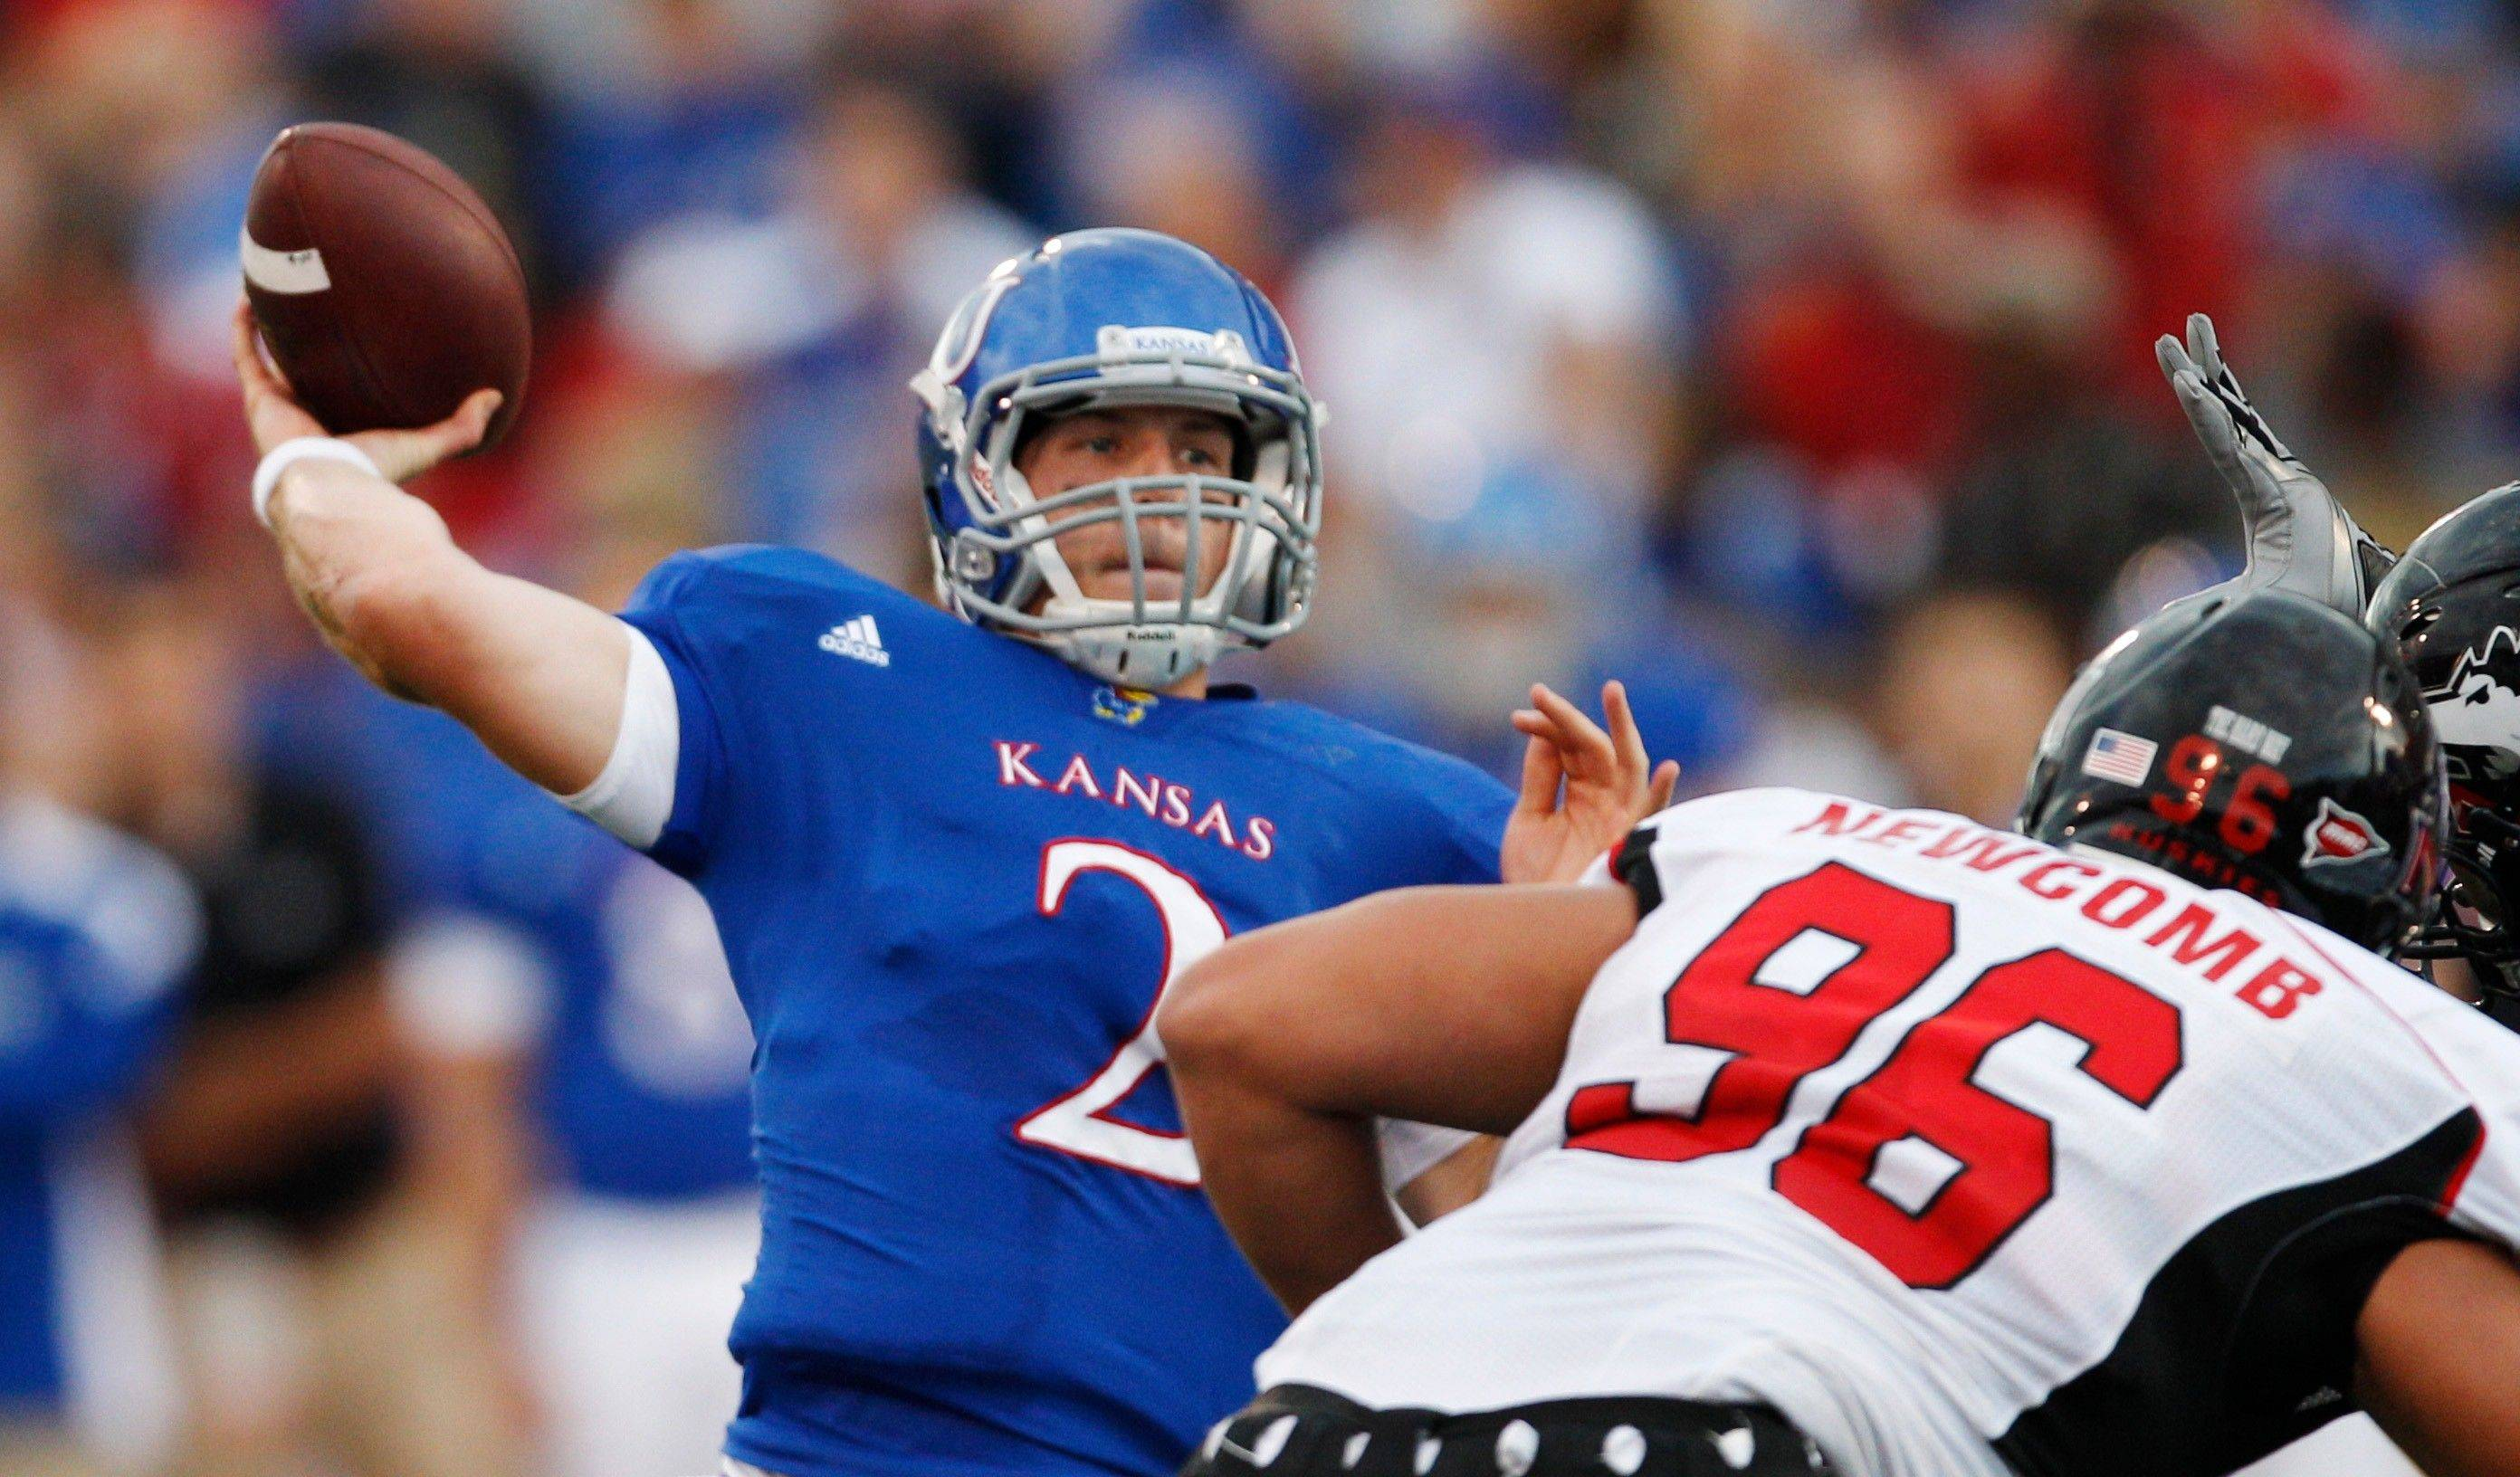 Kansas quarterback Jordan Webb throws a touchdown pass to tailback James Sims during the first half Saturday night.